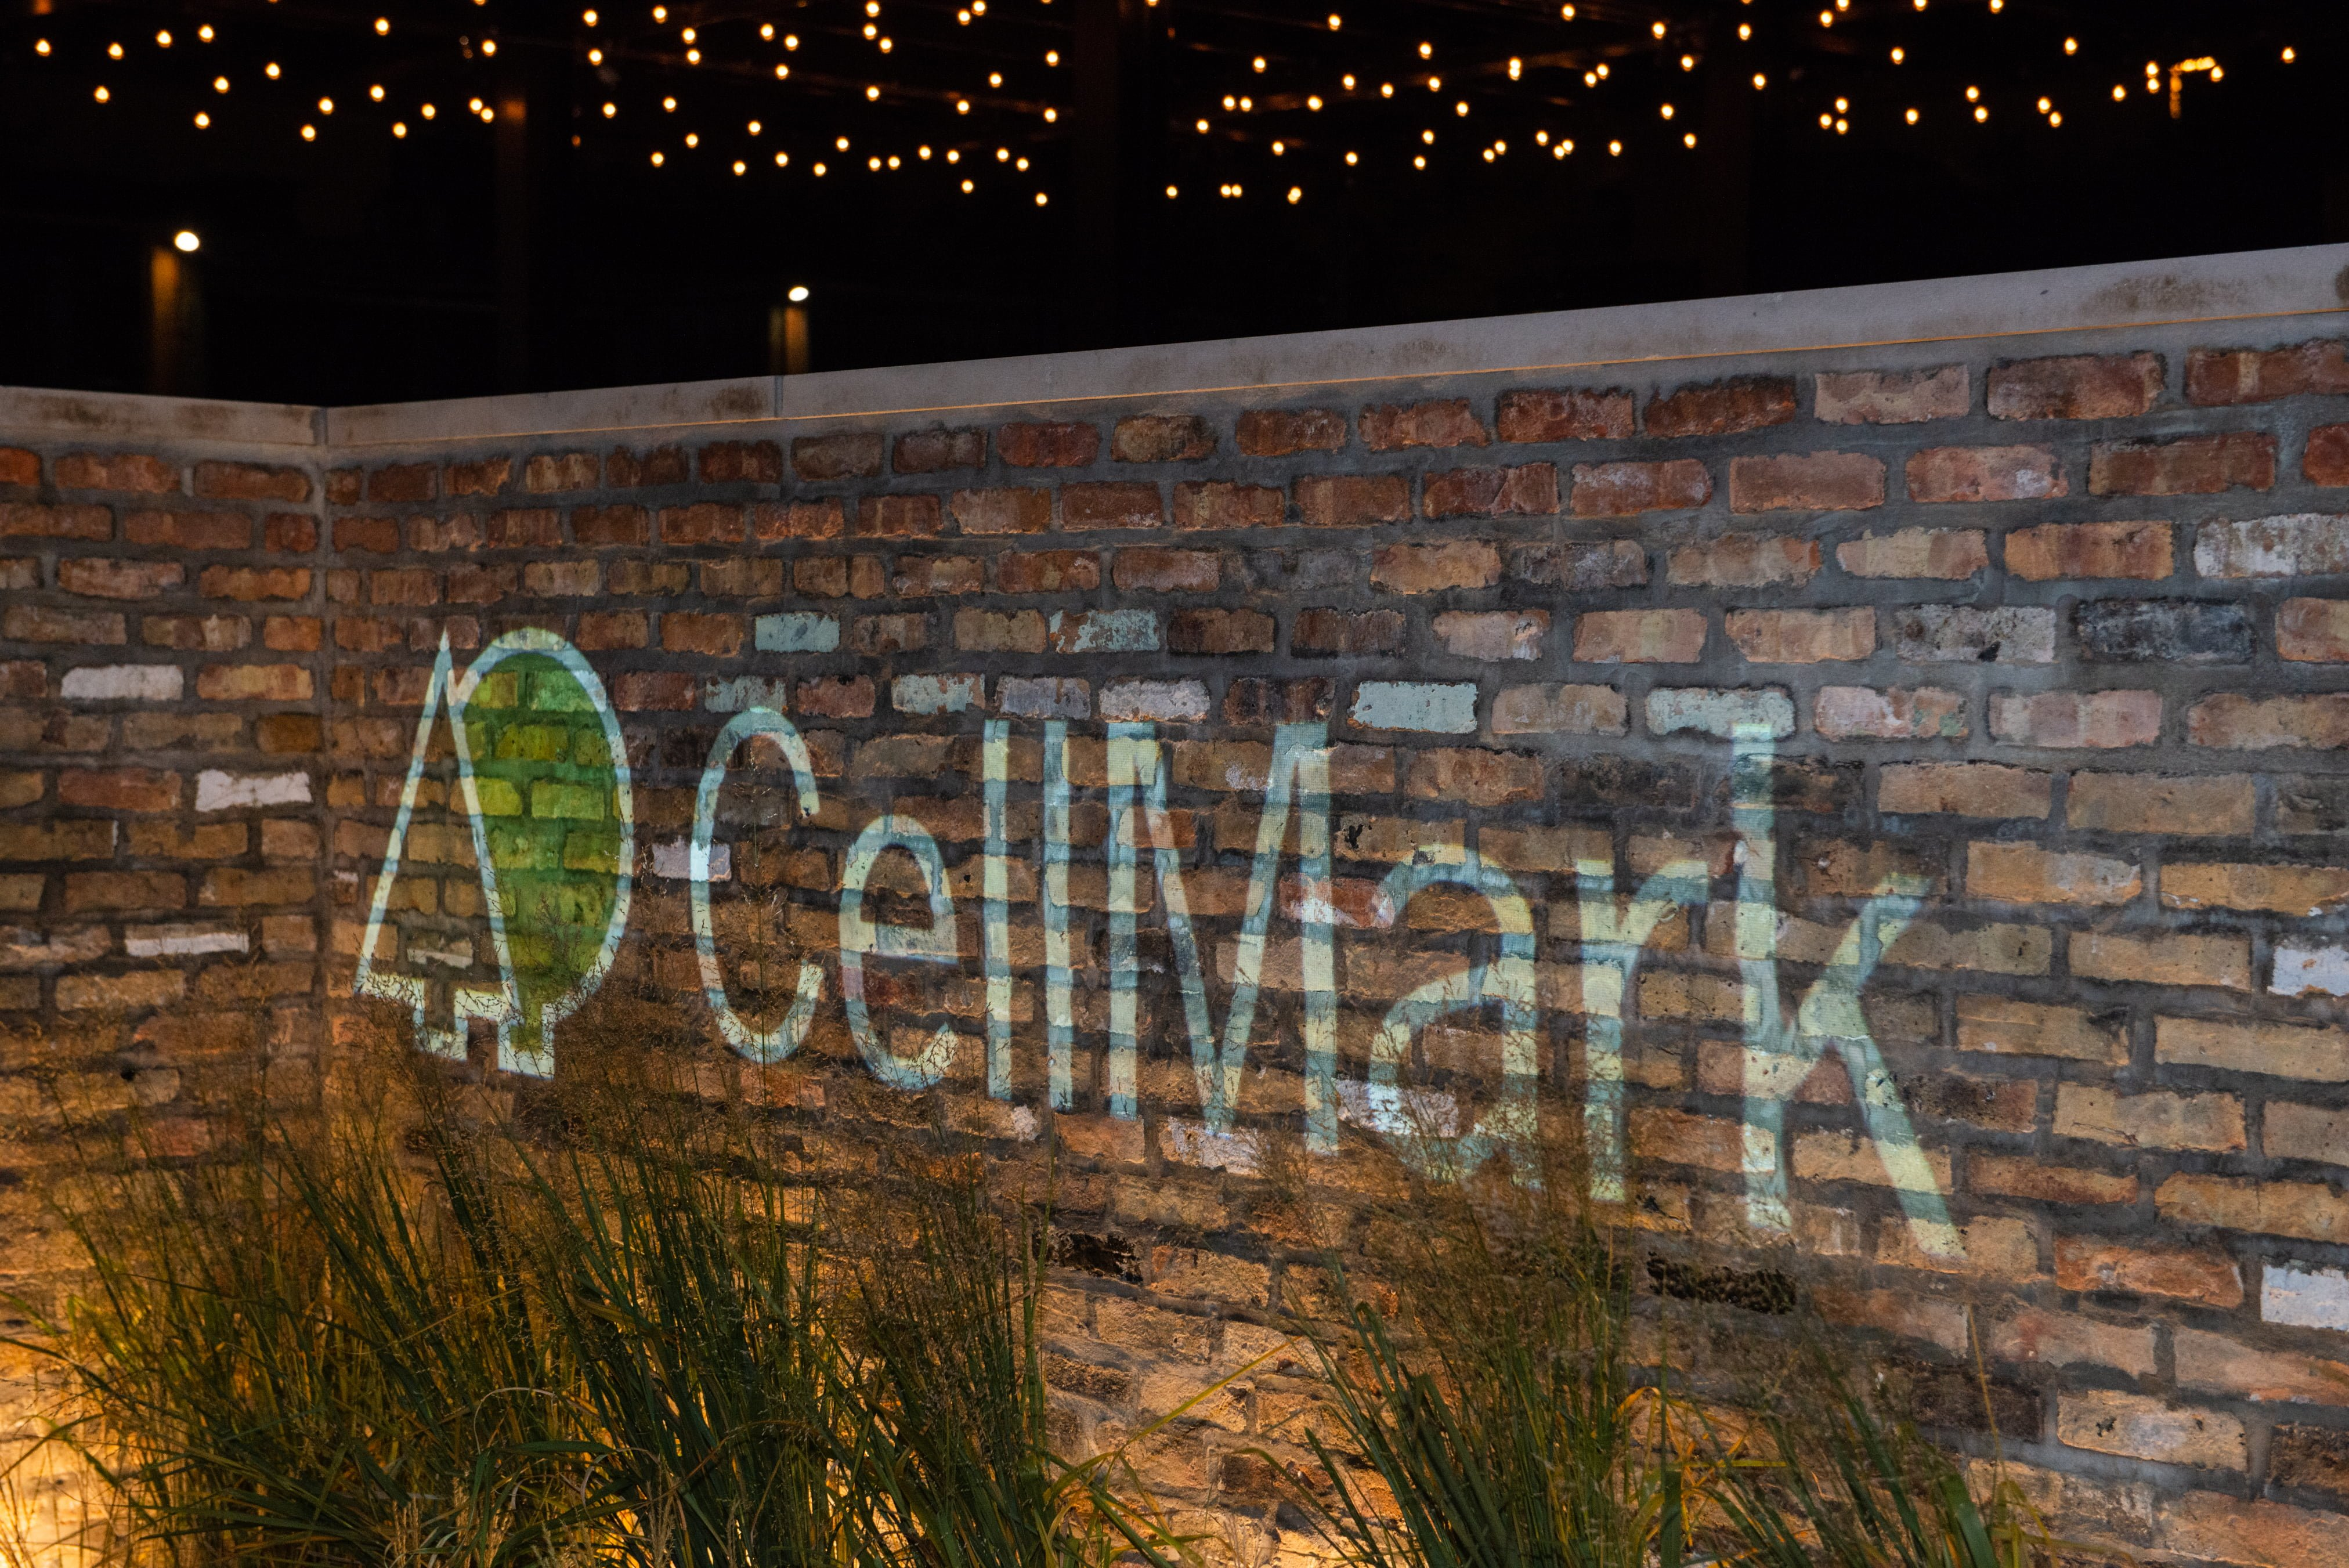 cellmark logo on a brick wall